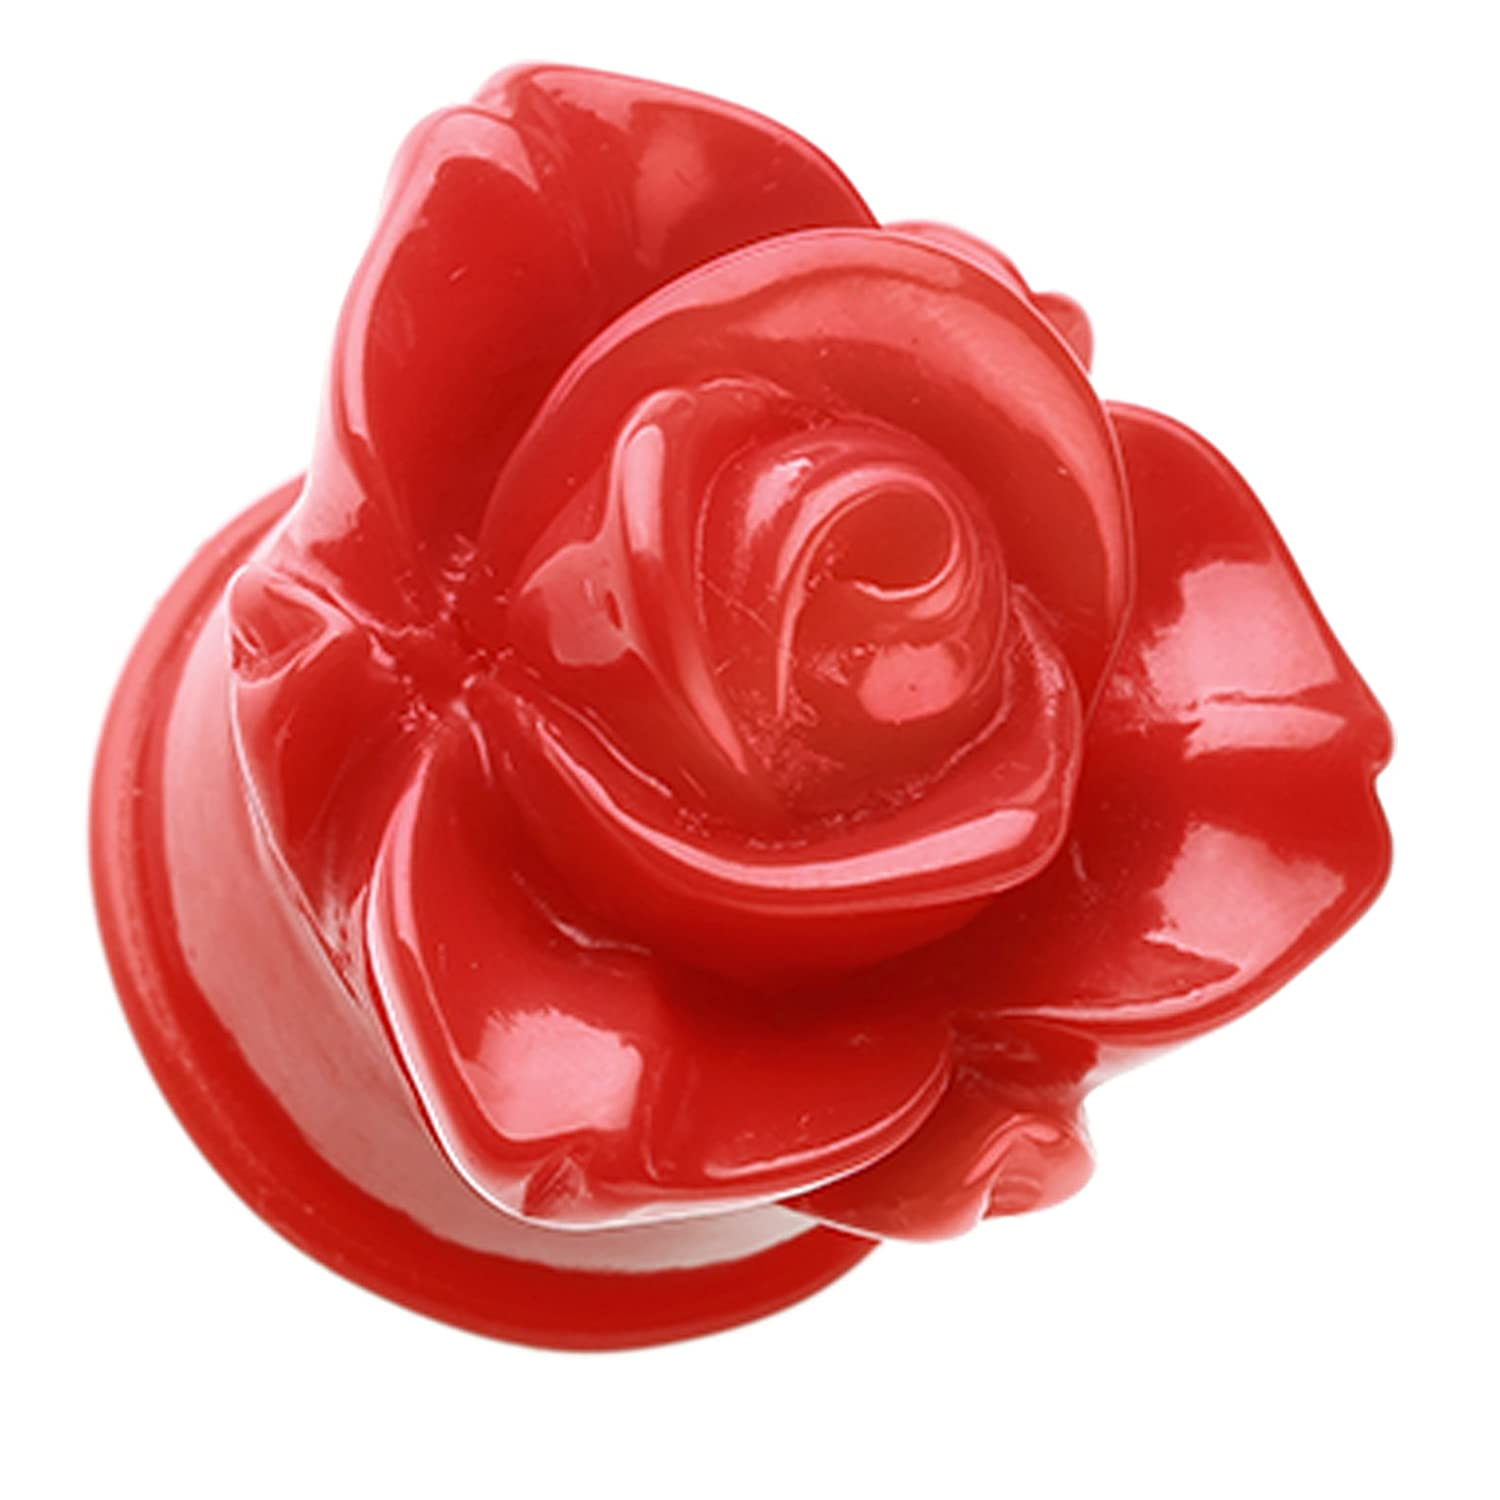 Red Sold as a Pair Wild Rose Flower Blossom Single Flared Ear Gauge Plug